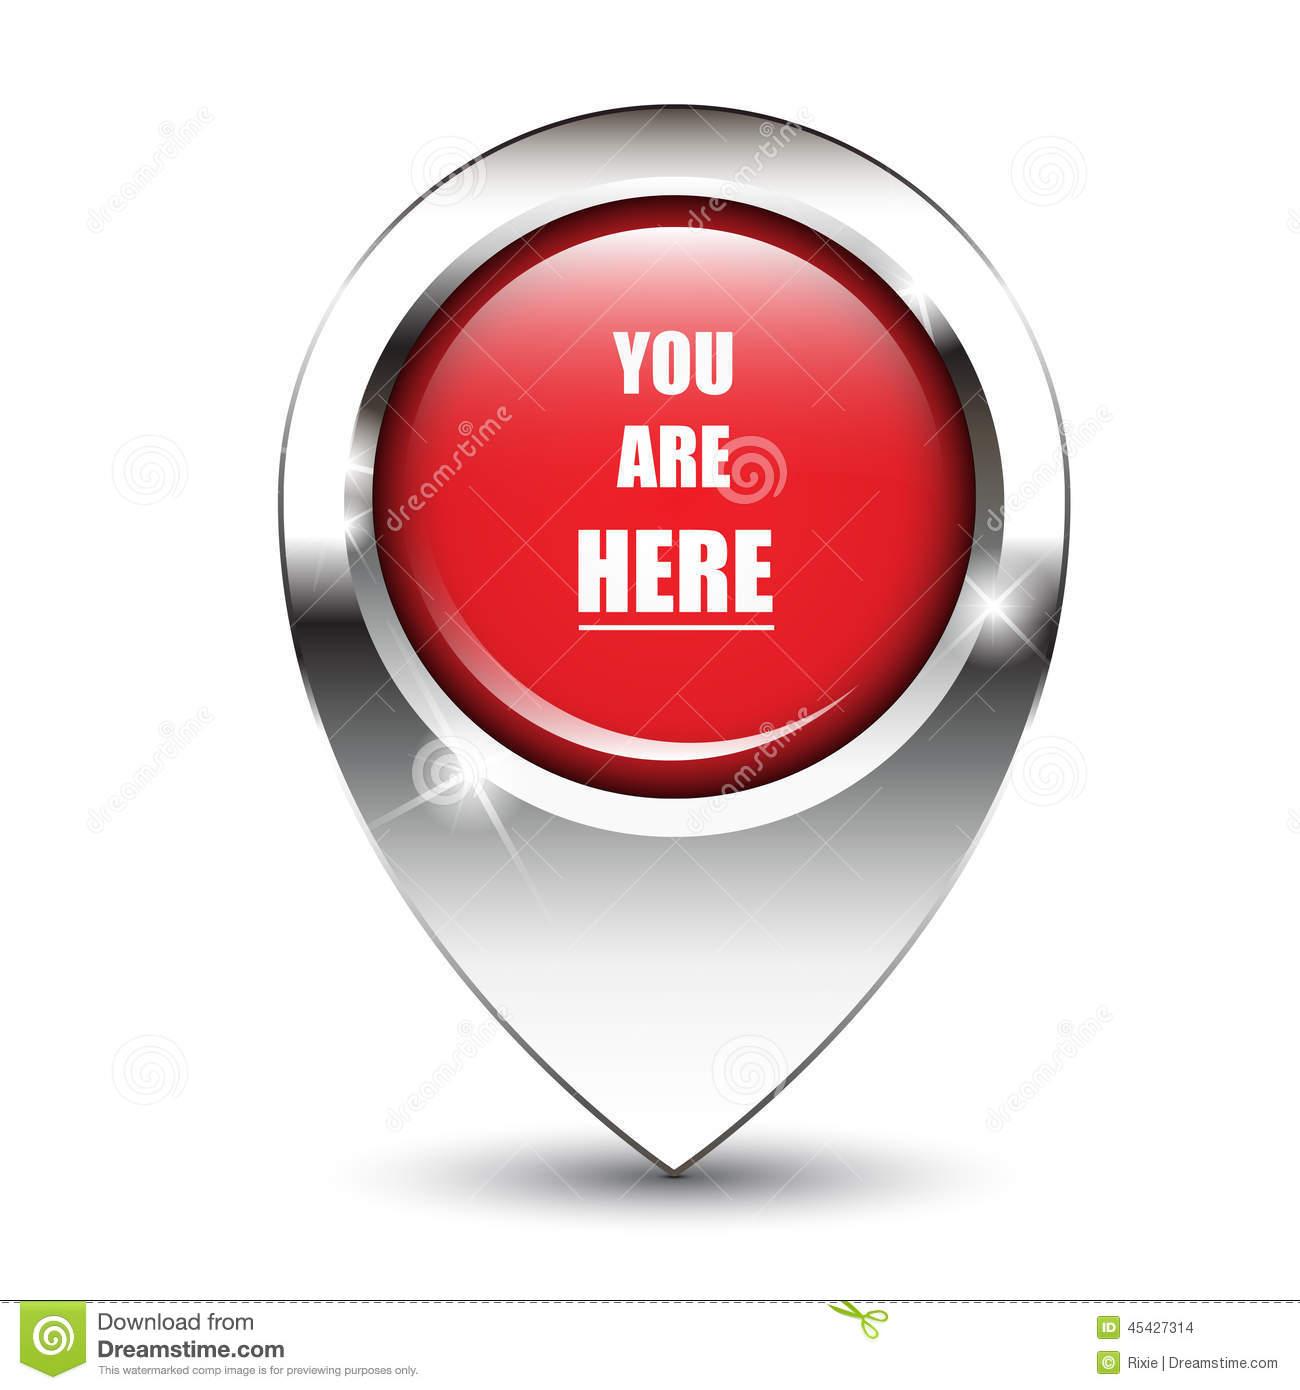 You Are Here Clipart.